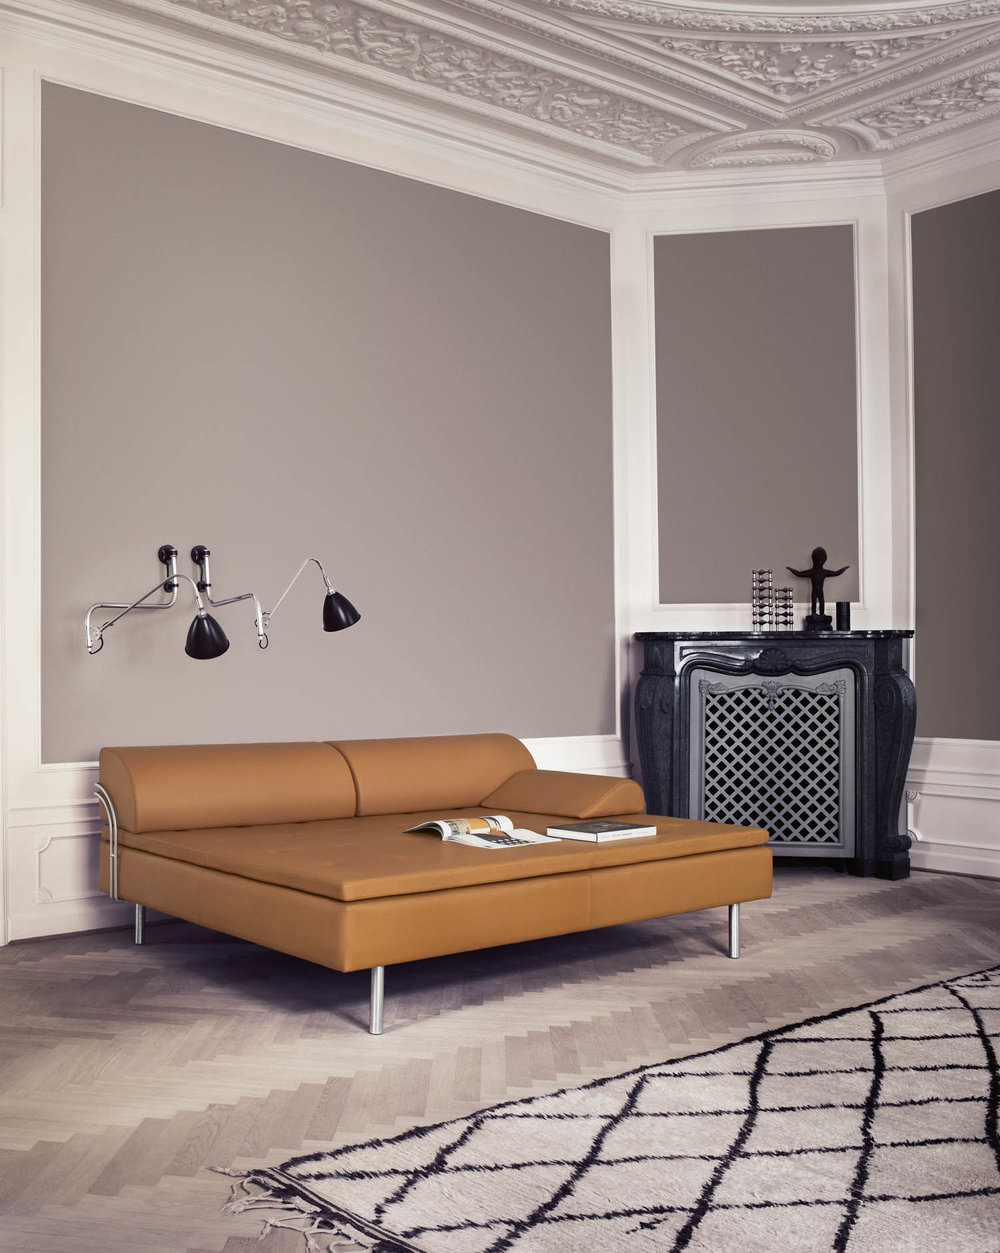 Spectacular Diva daybed by Gubi and Bestlite wall lamps